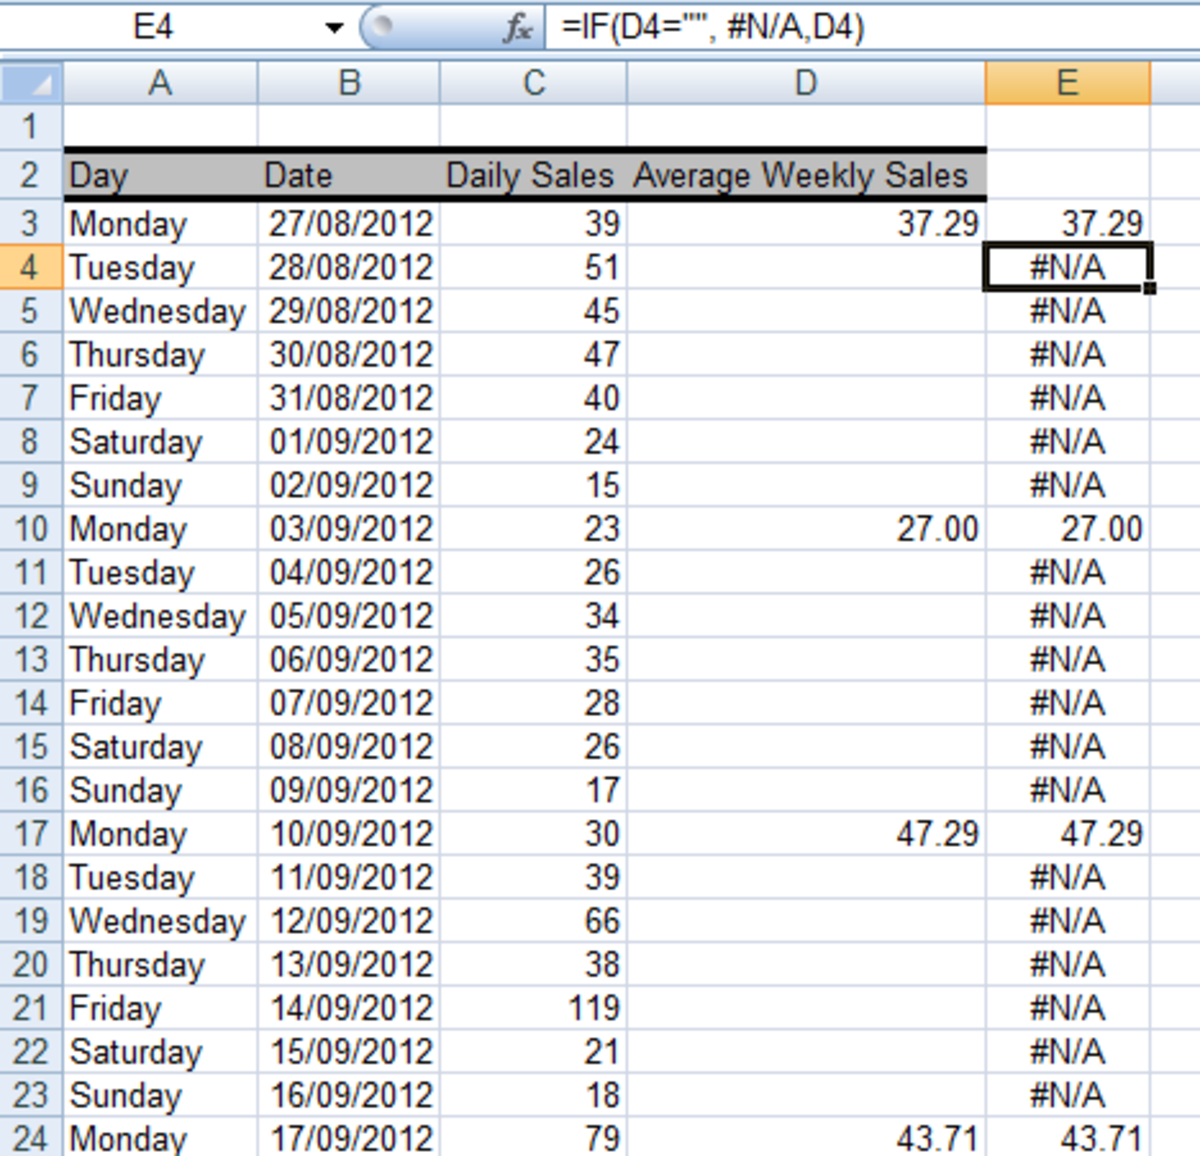 Ediblewildsus  Outstanding How To Get Excel  And  To Ignore Empty Cells In A Chart Or  With Fetching Using The If Function In A Formula To Convert Empty Cells To Na With Astounding Excel Formula Contains Also Microsoft Excel Macros In Addition Cell Styles In Excel And Practice Excel Test As Well As Bar Graph Excel Additionally Learning Excel  From Turbofuturecom With Ediblewildsus  Fetching How To Get Excel  And  To Ignore Empty Cells In A Chart Or  With Astounding Using The If Function In A Formula To Convert Empty Cells To Na And Outstanding Excel Formula Contains Also Microsoft Excel Macros In Addition Cell Styles In Excel From Turbofuturecom